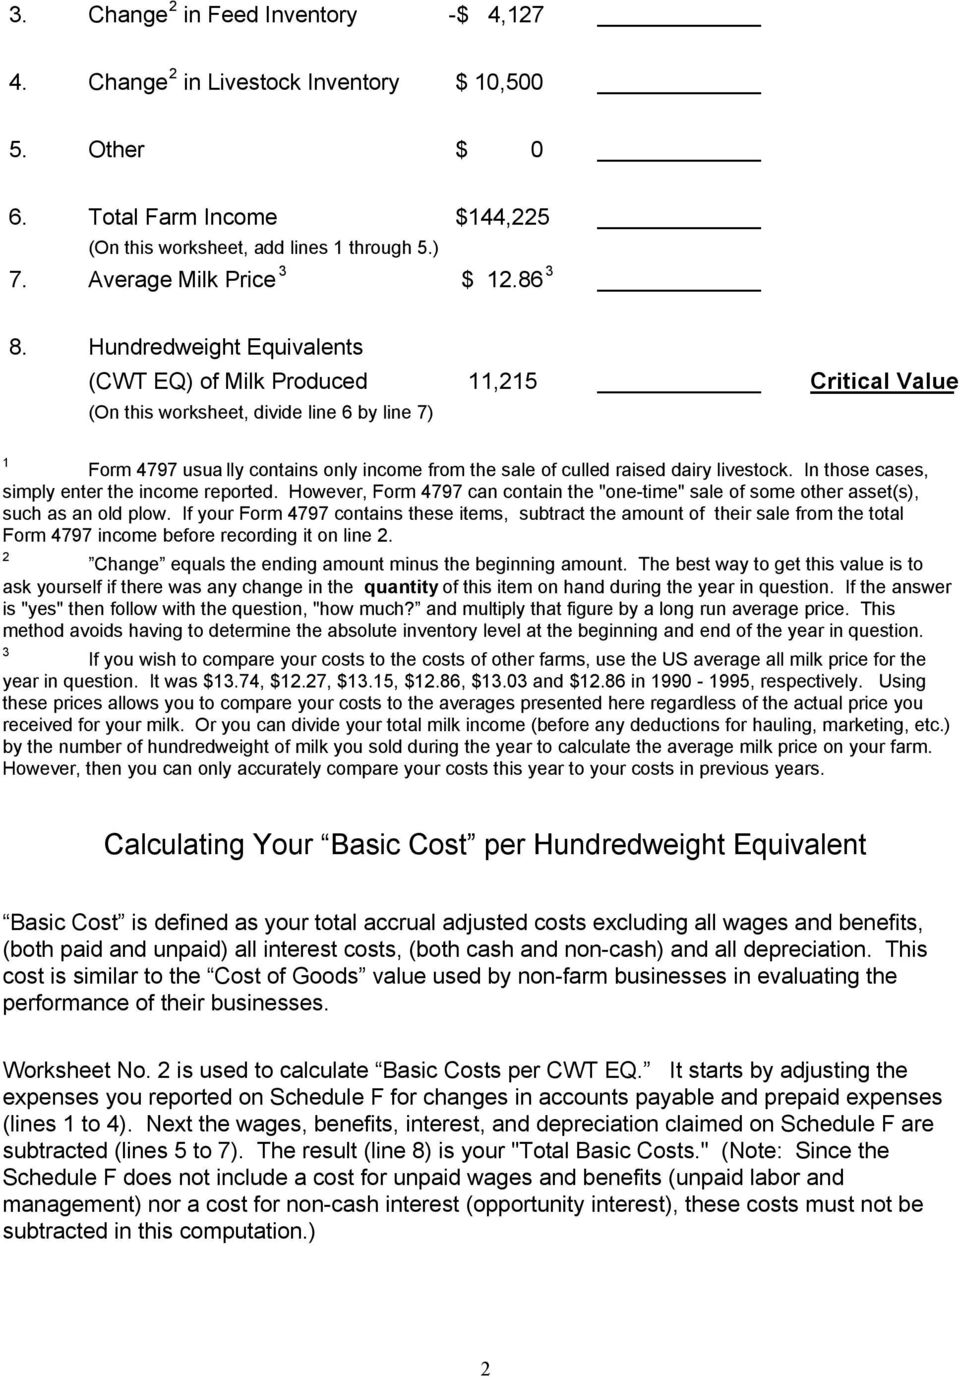 Hundredweight Equivalents (CWT EQ) of Milk Produced 11,215 Critical Value (On this worksheet, divide line 6 by line 7) 1 Form 4797 usua lly contains only income from the sale of culled raised dairy